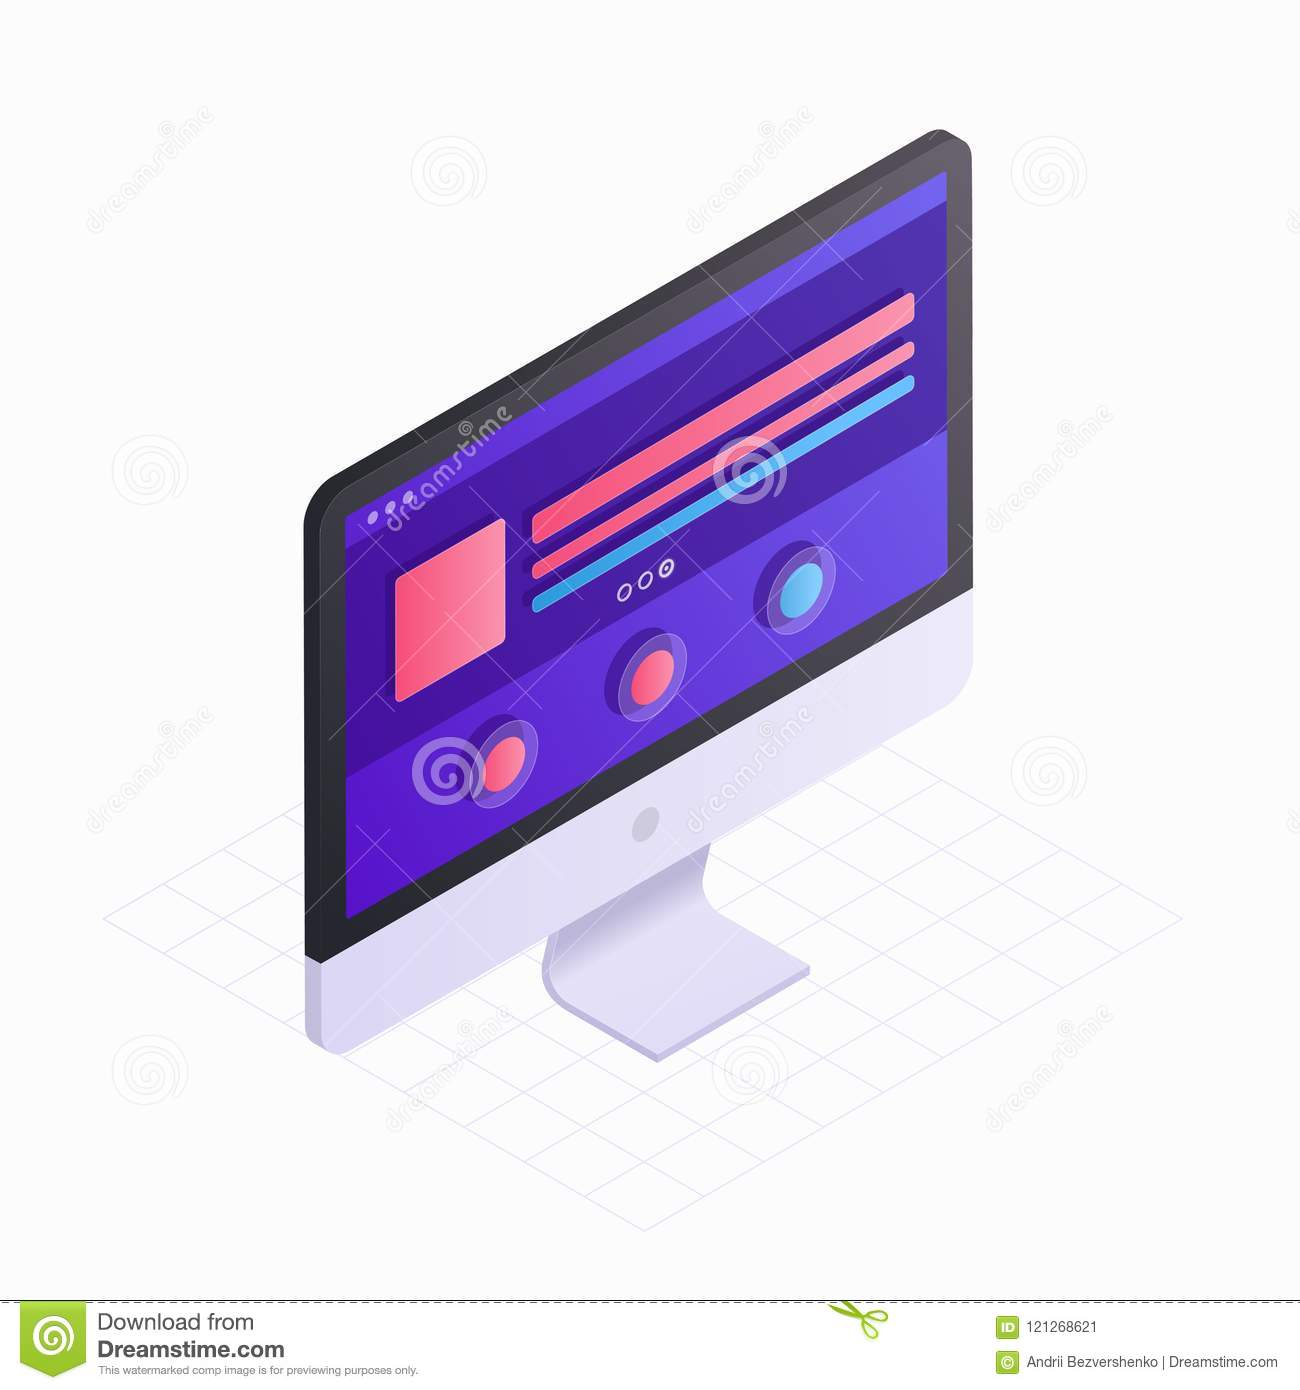 3D Isometric computer screen in flat design vector illustration. LCD monitor icon isolated on white background. Concept